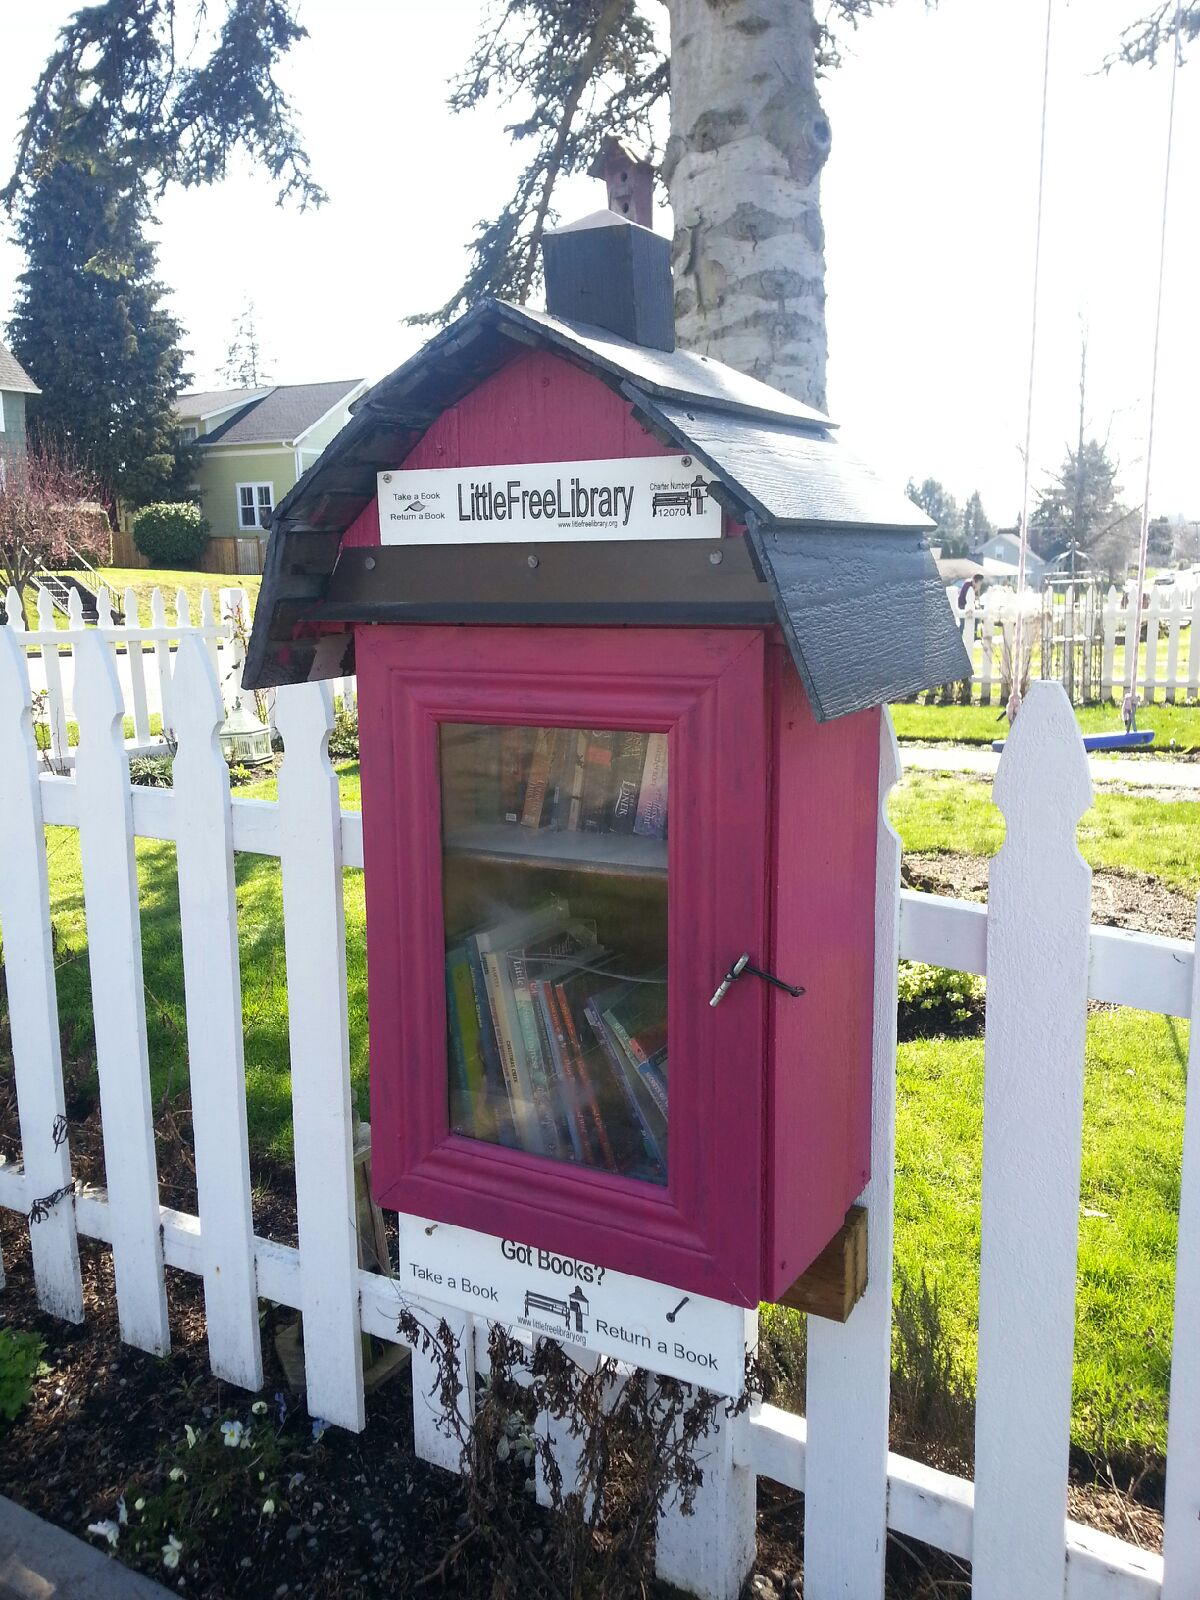 Little Free Library NW neigh